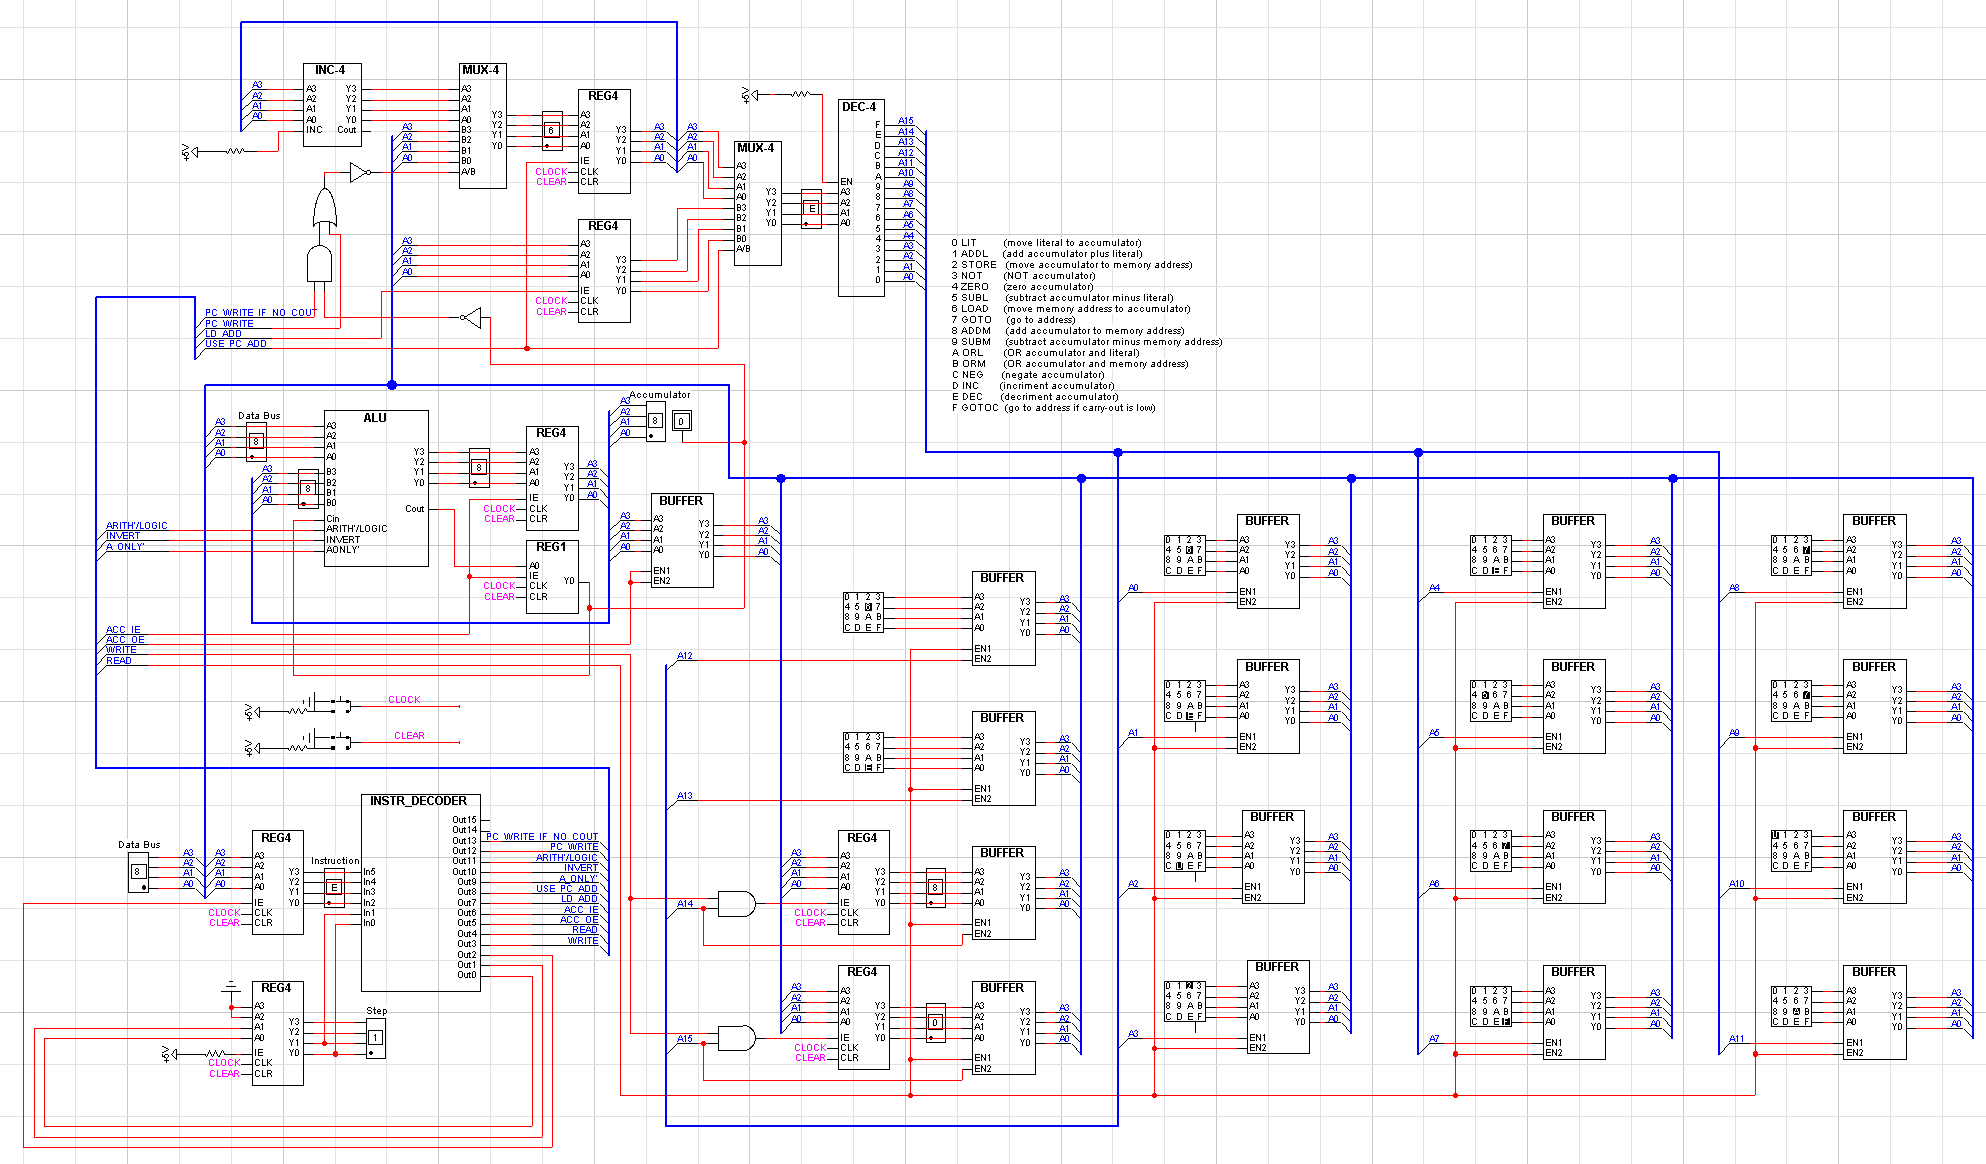 4 Bit Nirvana Robin Messenger 1 Alu Block Diagram Of The Processor In Logicworks